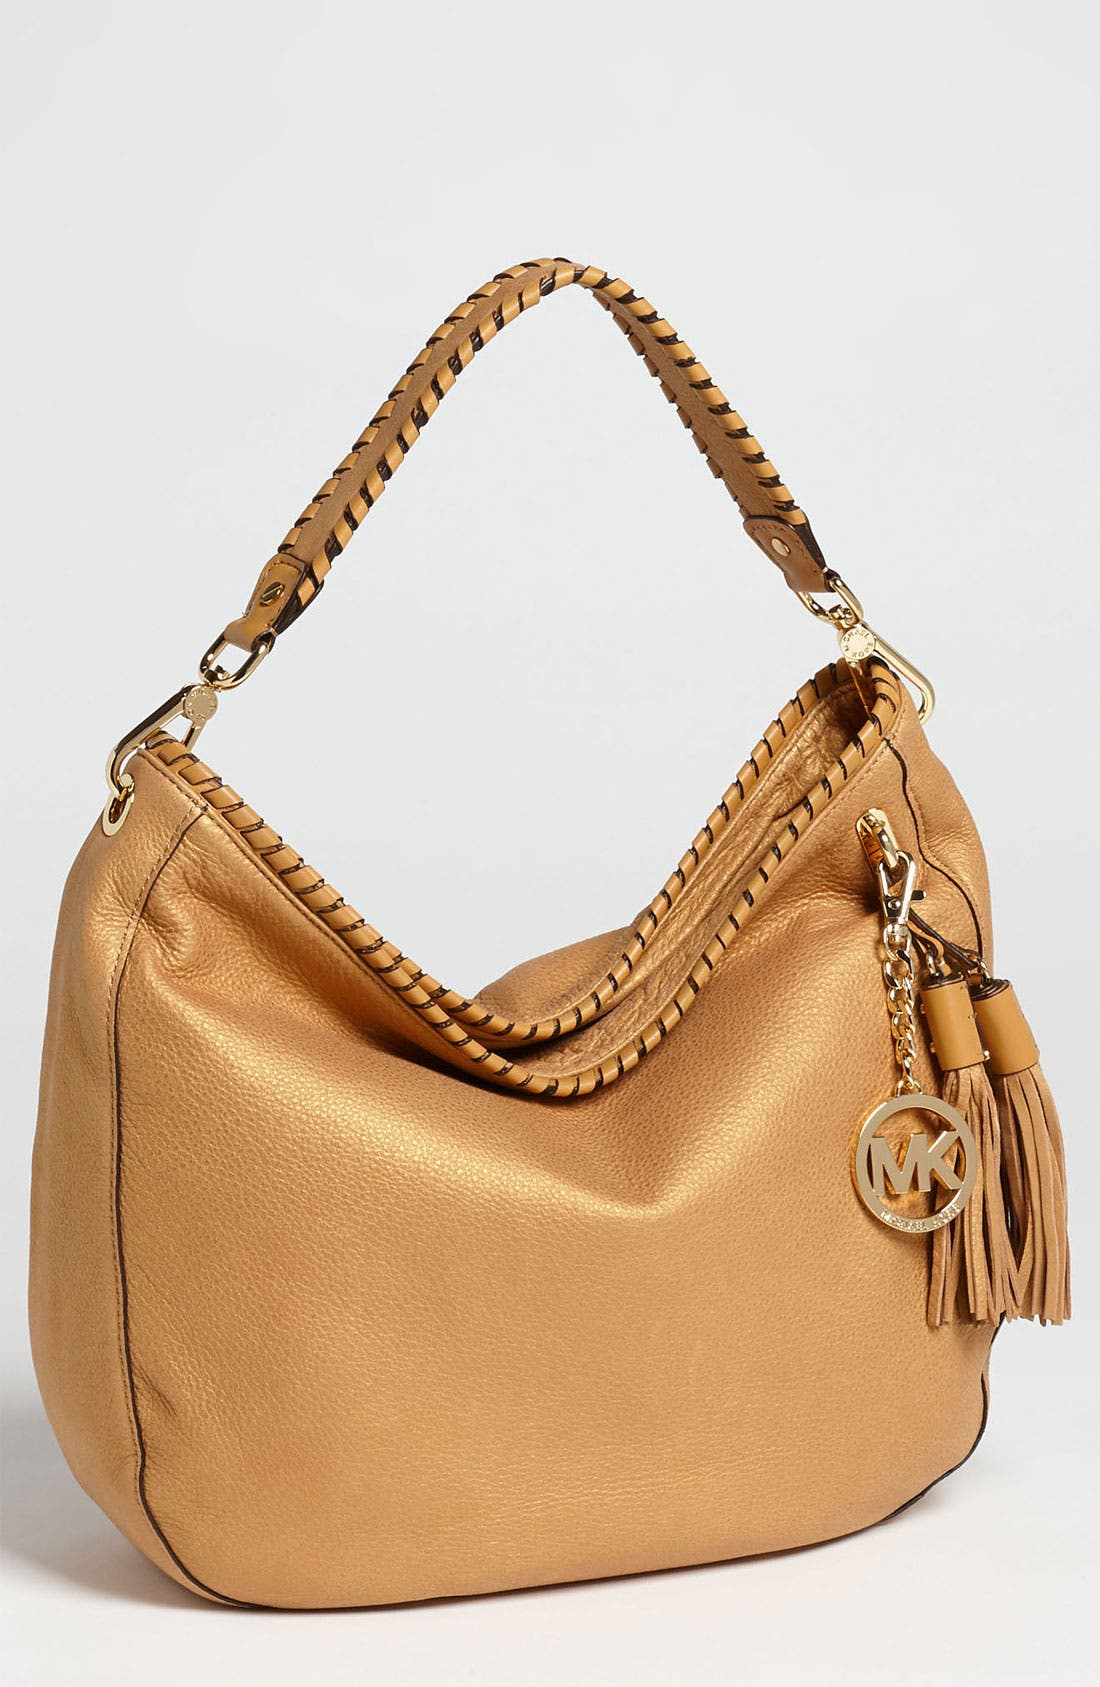 Alternate Image 1 Selected - MICHAEL Michael Kors 'Bennet - Large' Glazed Nubuck Shoulder Bag